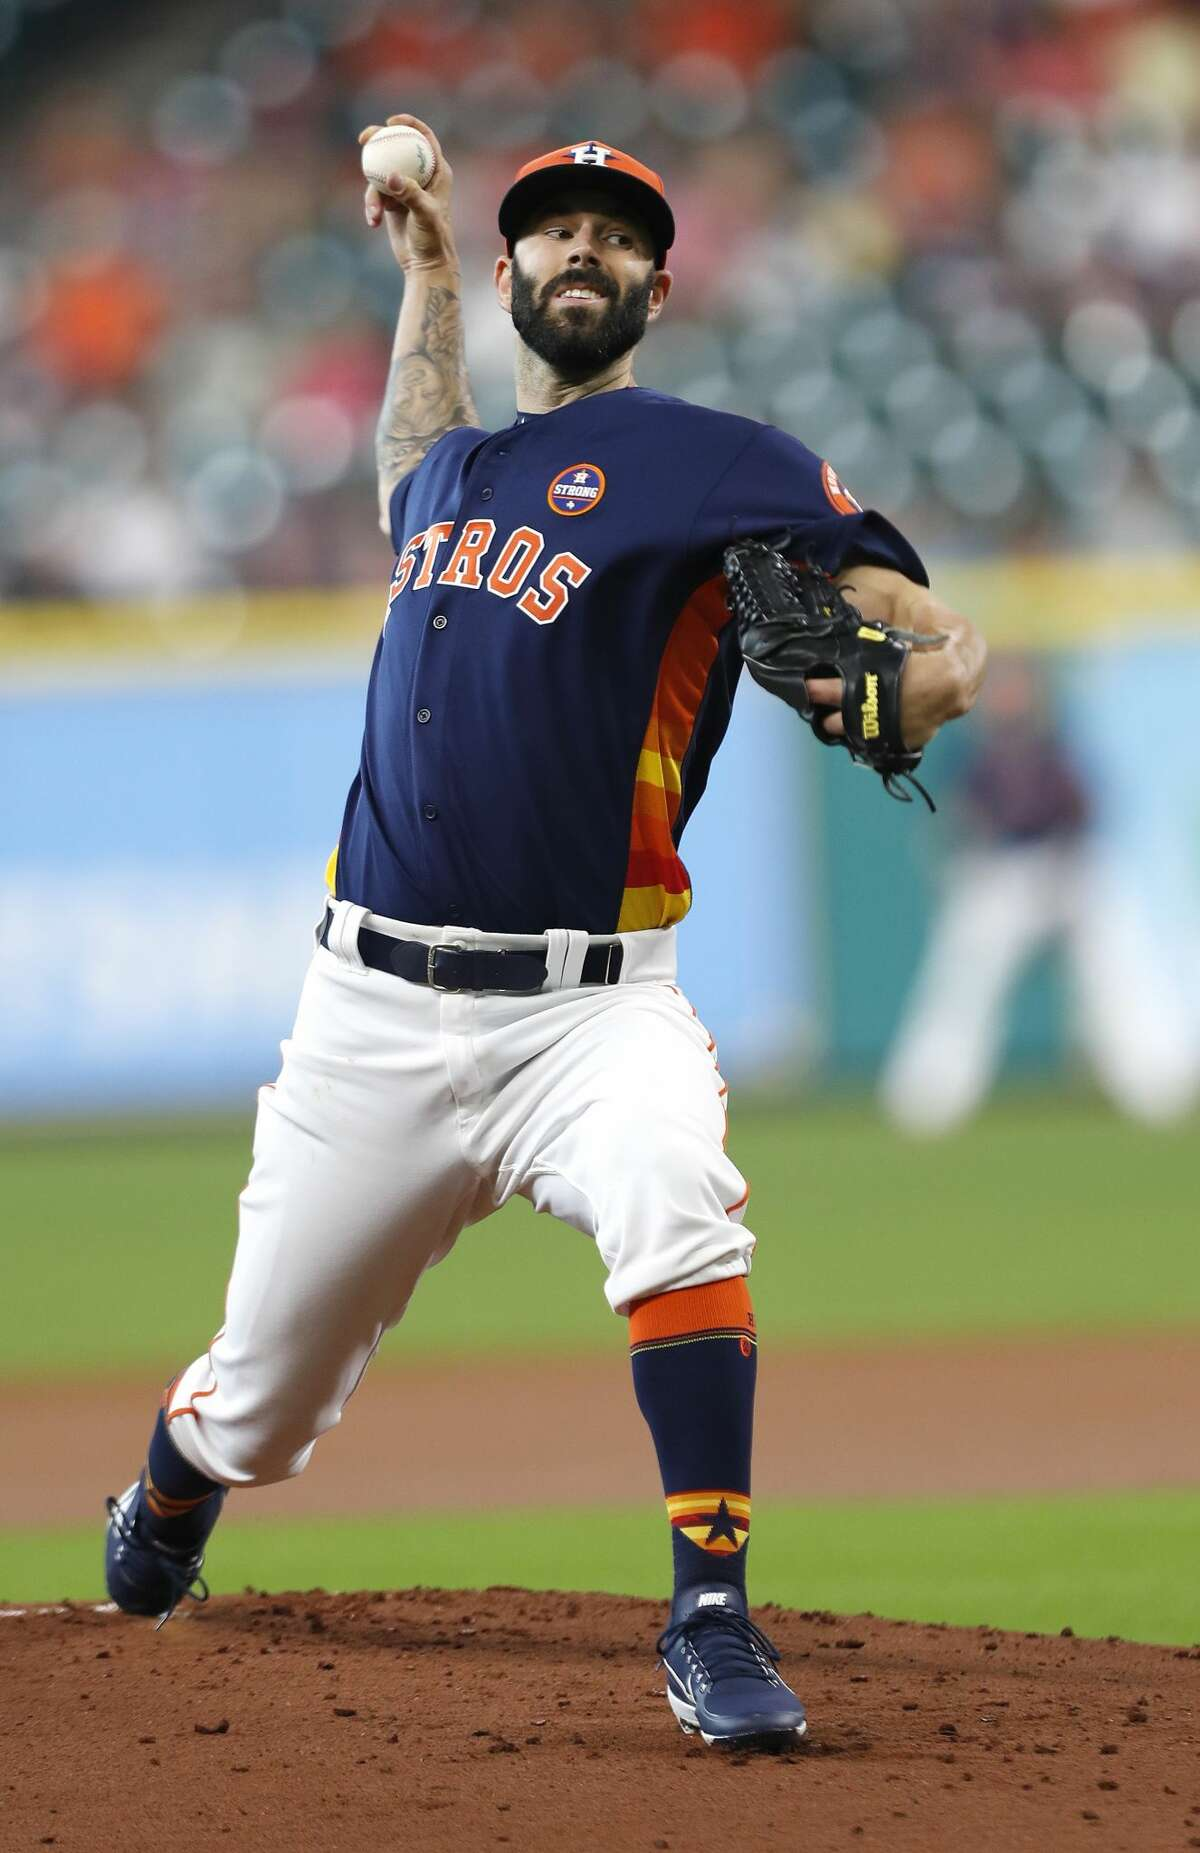 Houston Astros starting pitcher Mike Fiers (54) pitches during the first inning of an MLB baseball game at Minute Maid Park, Sunday, Sept. 3, 2017, in Houston. ( Karen Warren / Houston Chronicle )